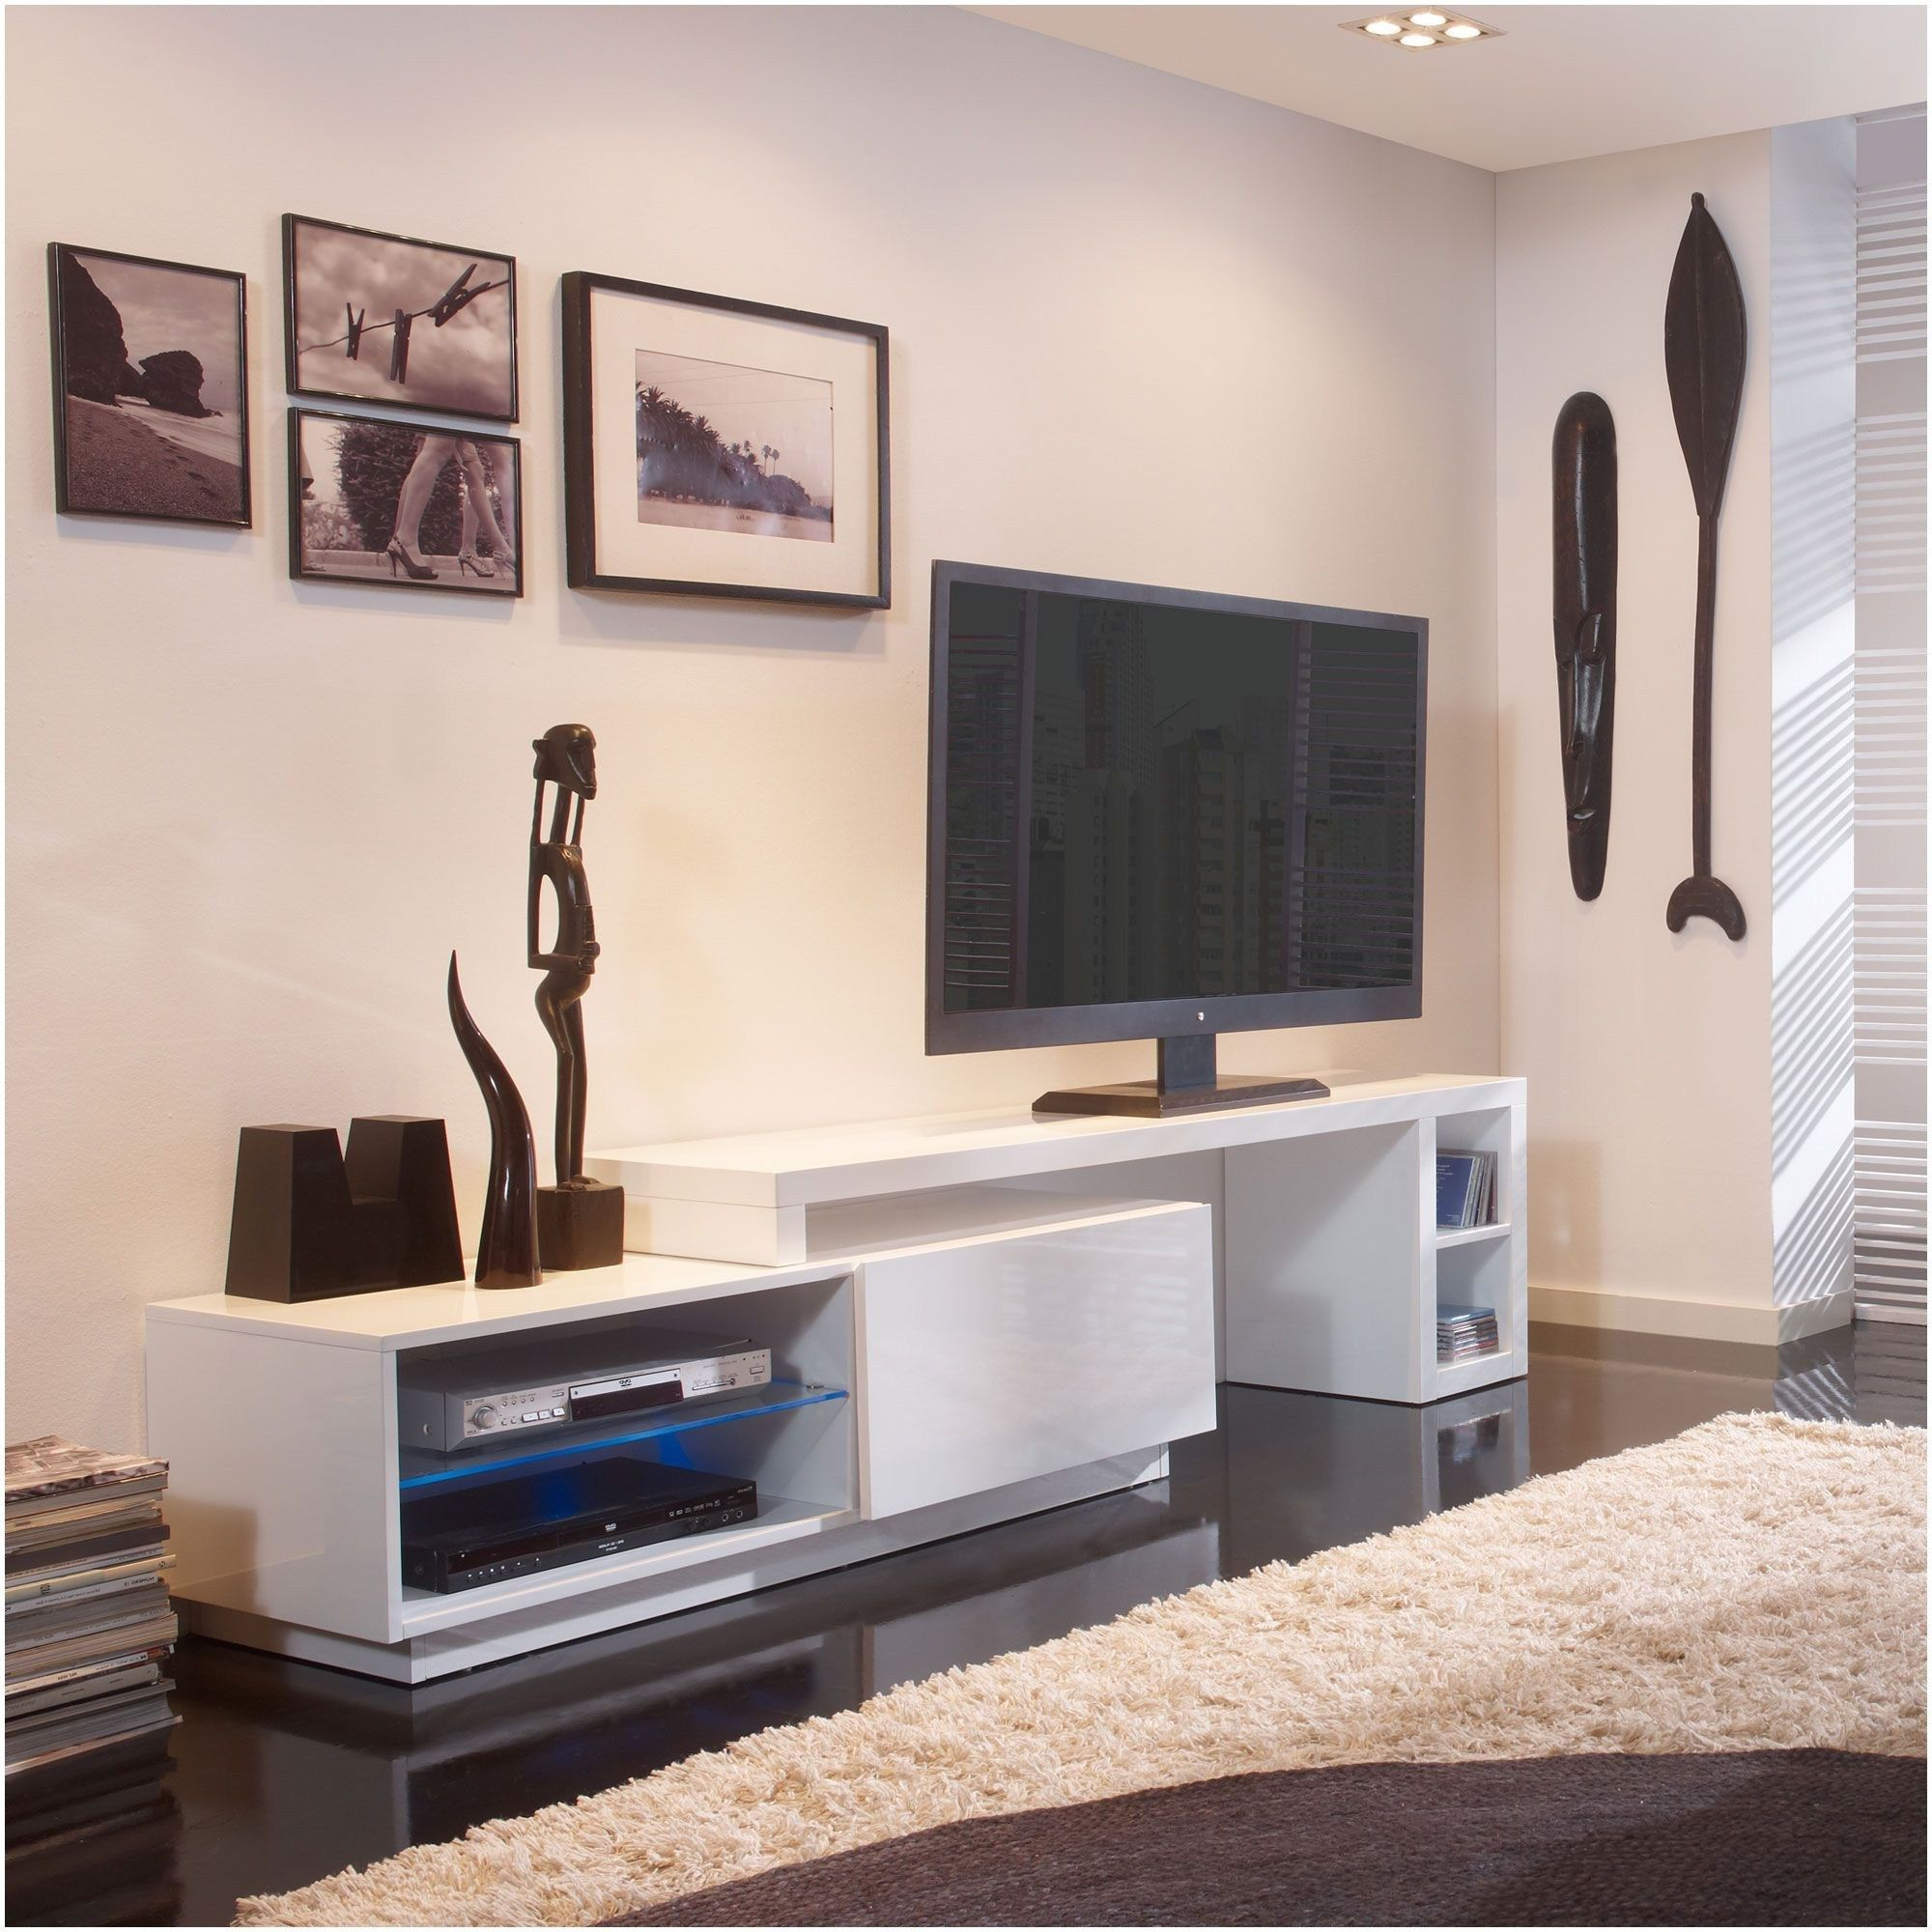 Télévision Chez Conforama Inspirant Galerie Table Tele 4 Meuble Fly Contemporary Tv Units Fresh Living Room Rustic Living Room Furniture